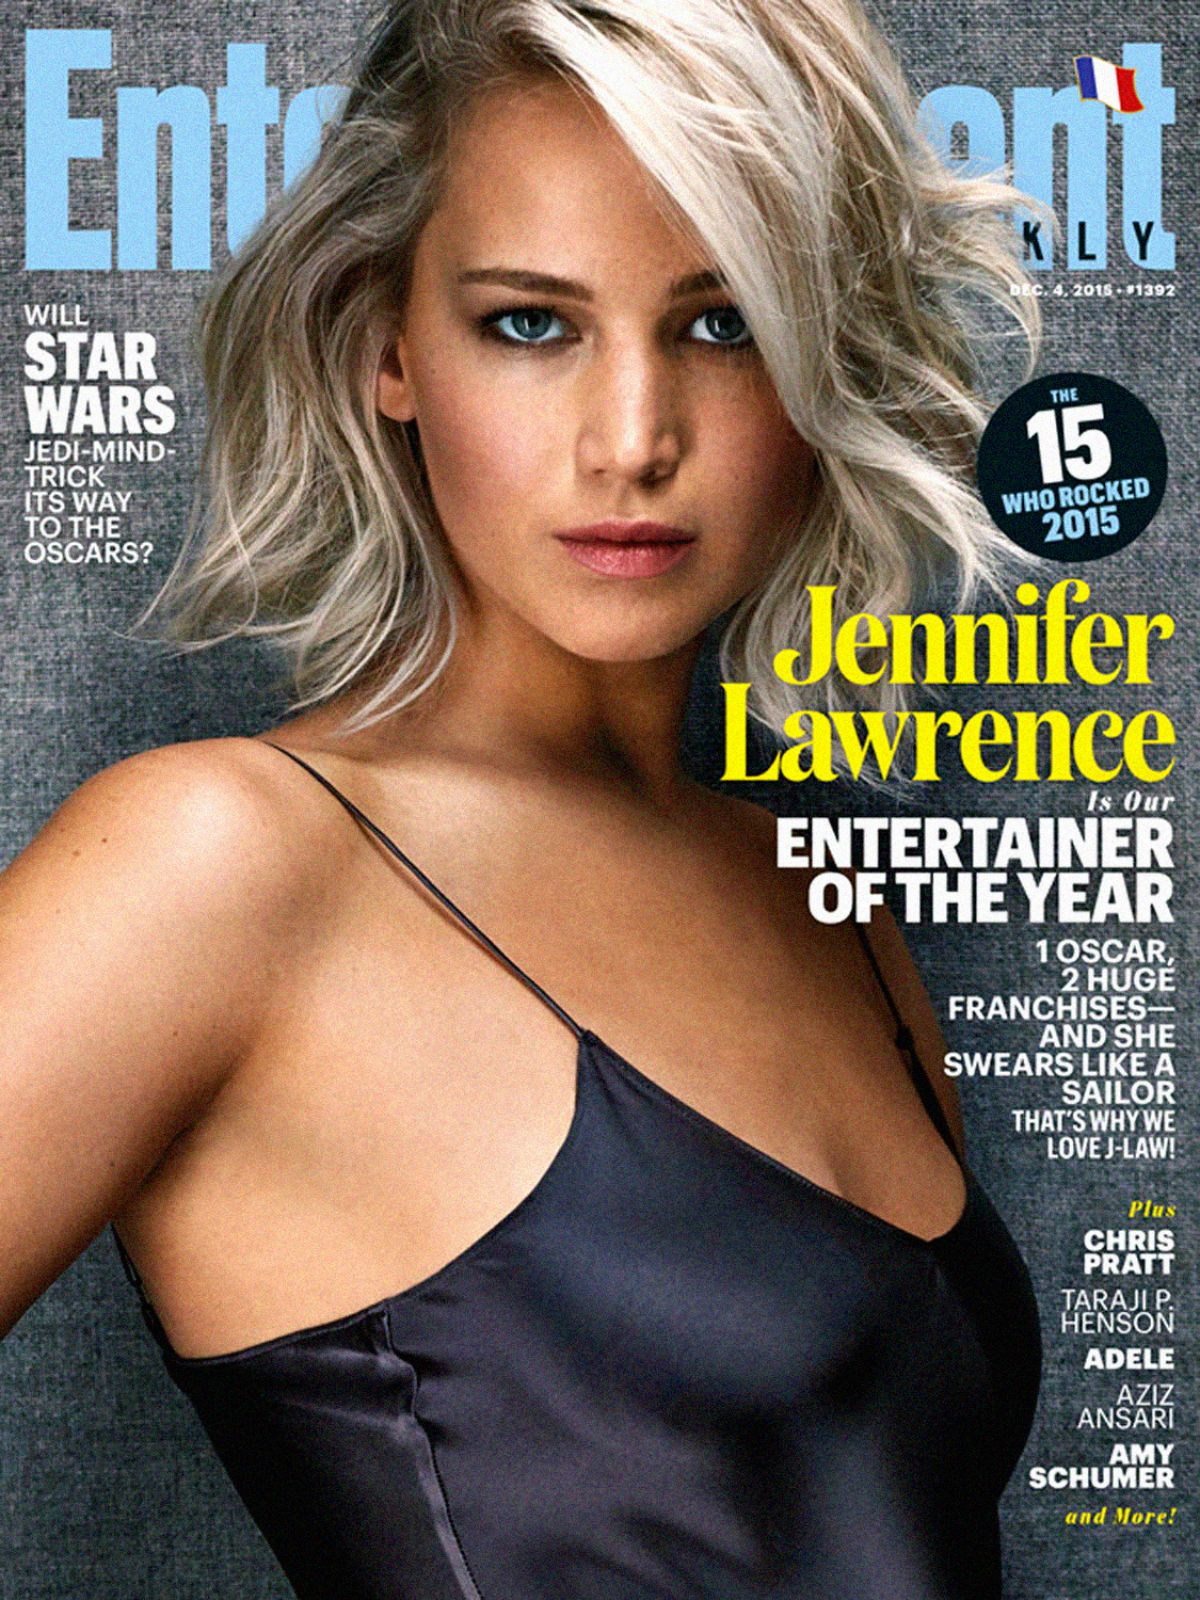 JENNIFER LAWRENCE on the Cover of Entertainment Weekly, December 2015 Issue